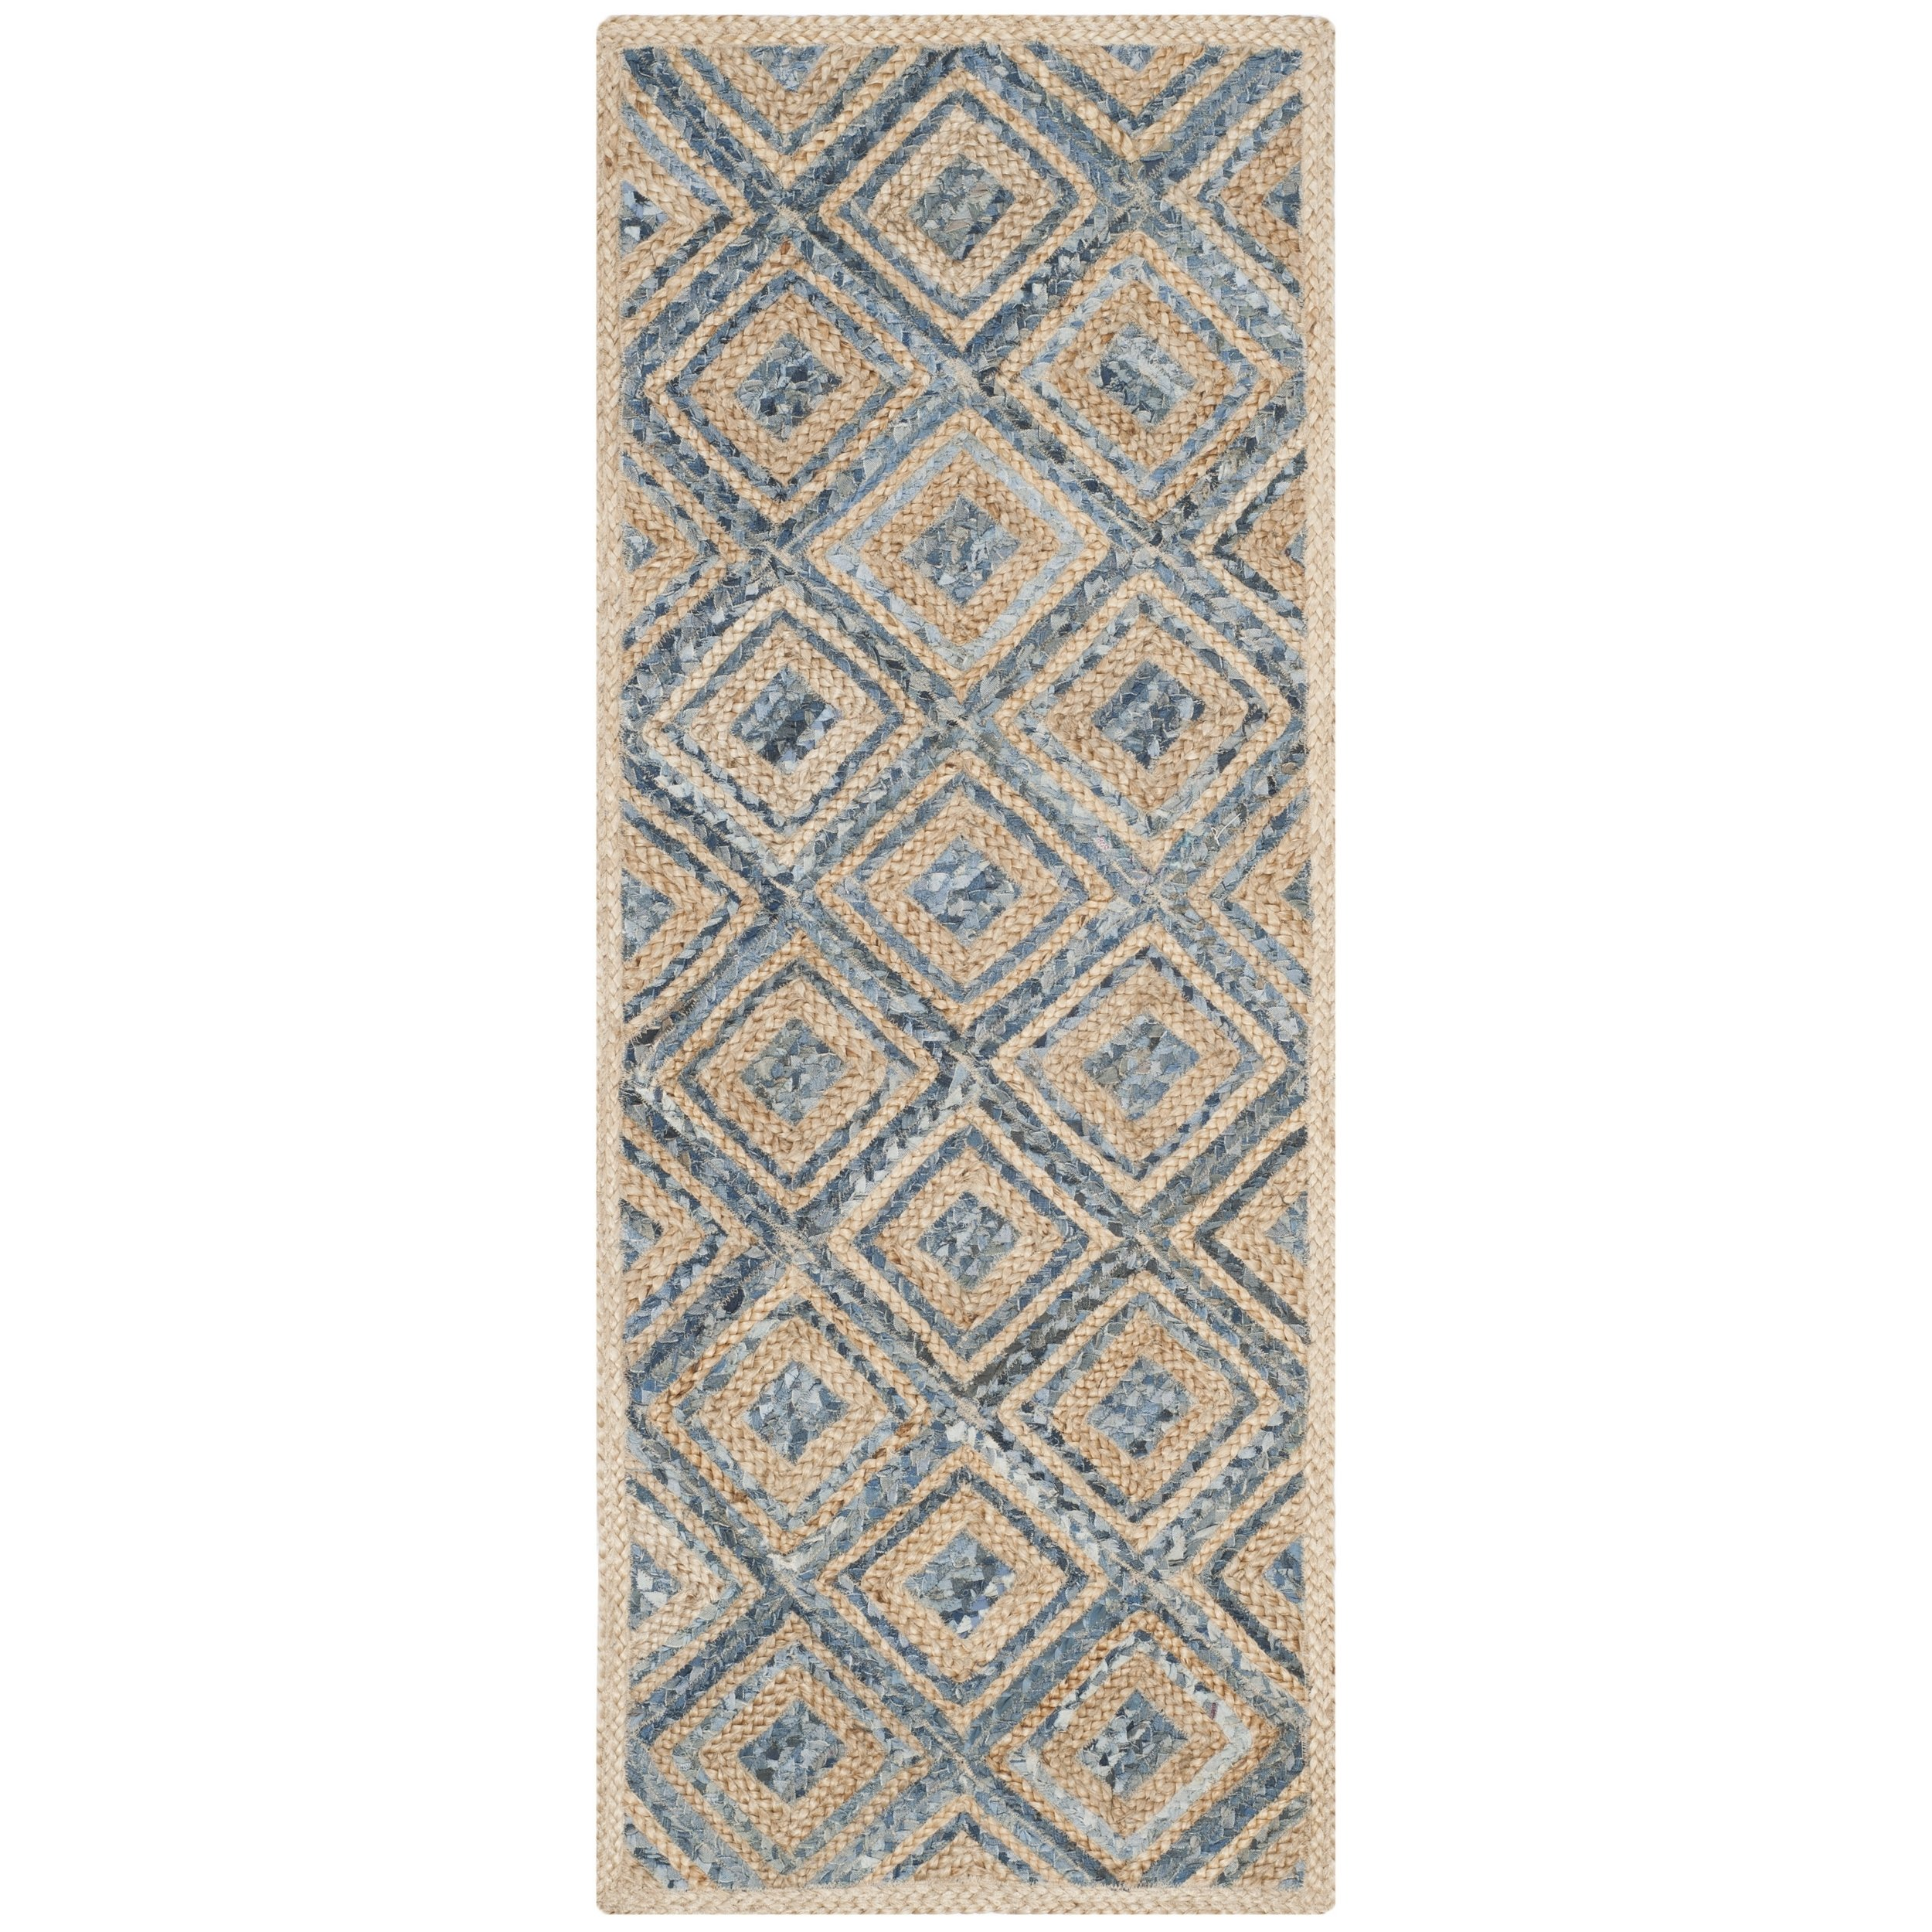 Safavieh Cape Cod Collection CAP354A Hand Woven Flatweave Diamond Geometric Natural and Blue Jute Area Rug (2'3'' x 4')